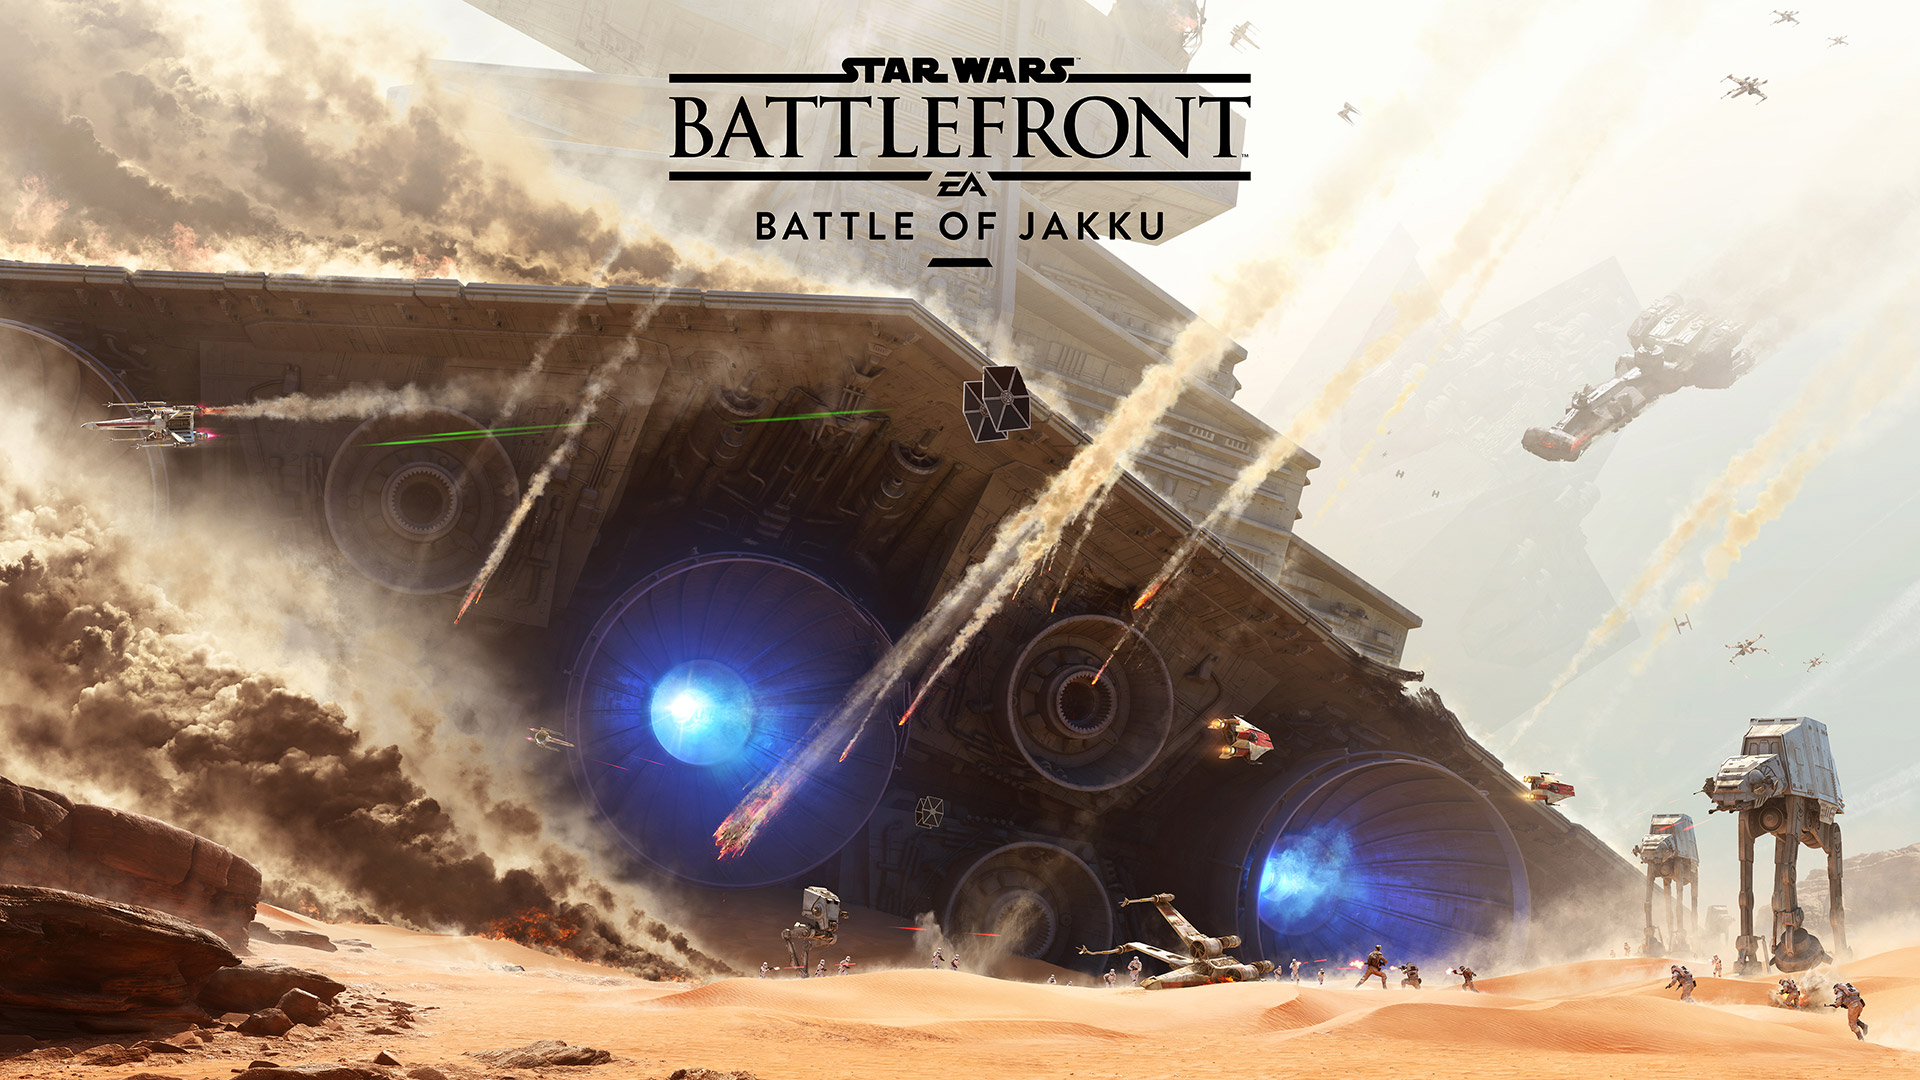 Star Wars Battlefront Sequel Confirmed, Will Tie In To New Movies featuredImage.img